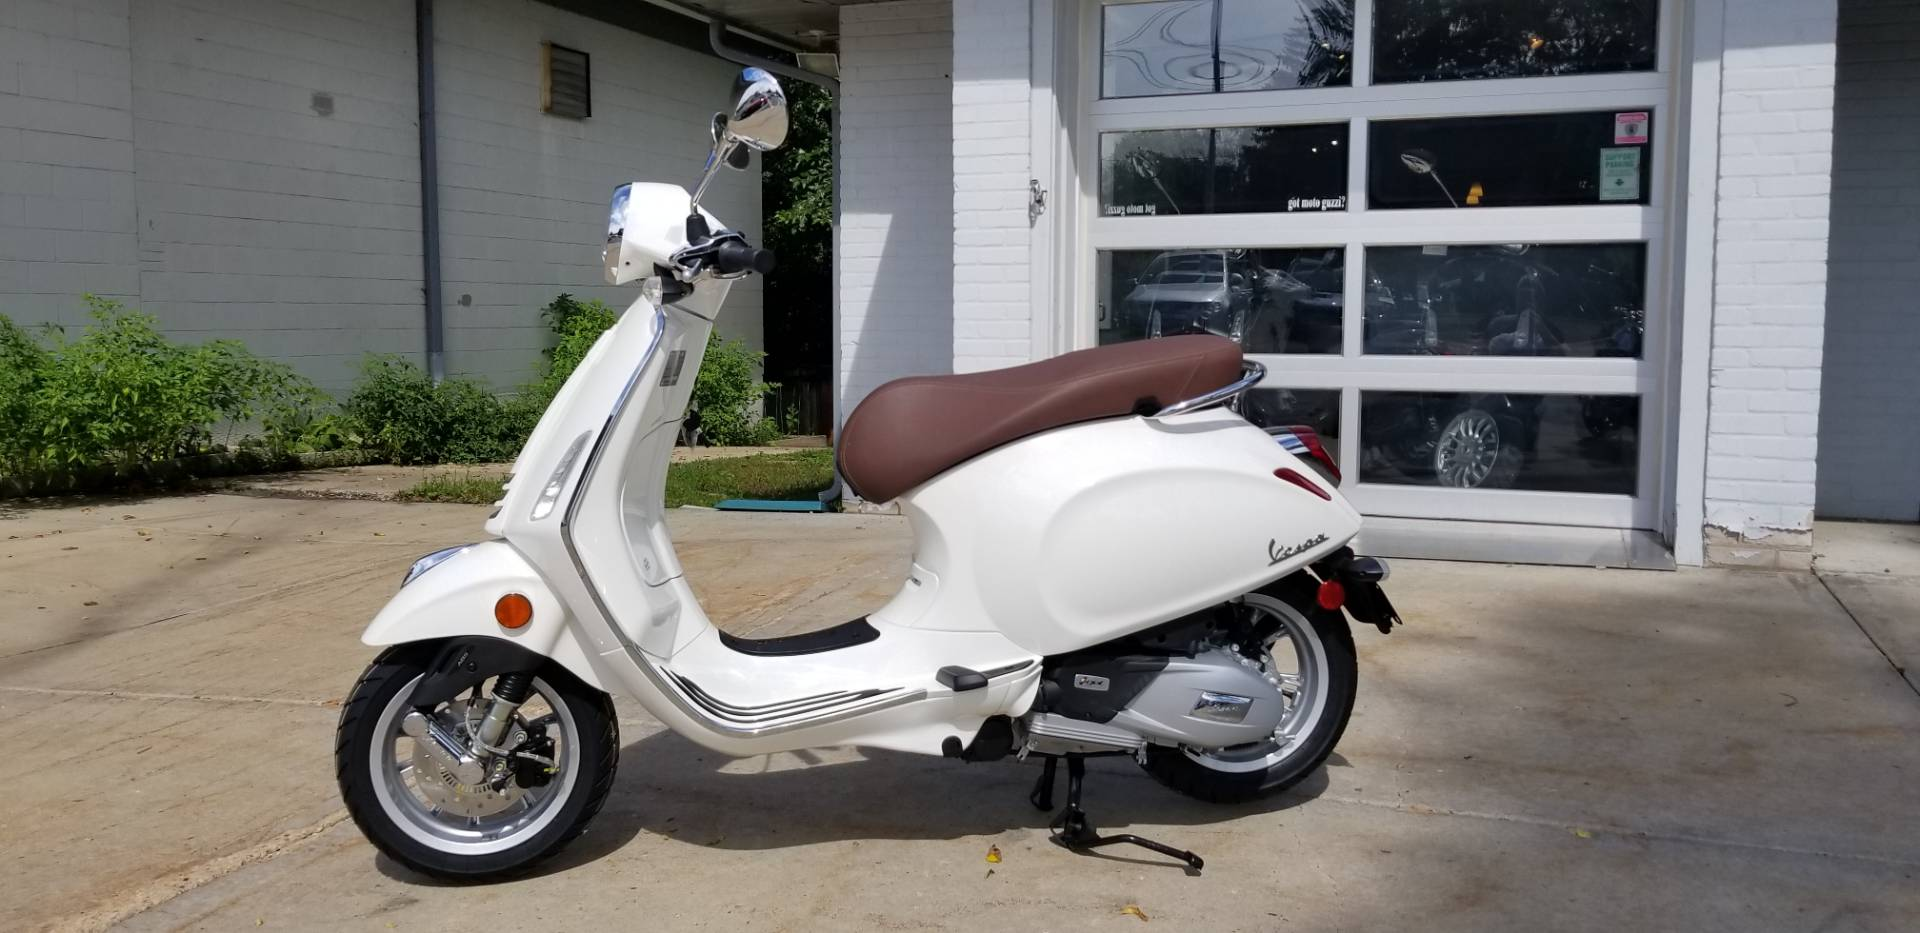 2019 Vespa Primavera 150 in Middleton, Wisconsin - Photo 2